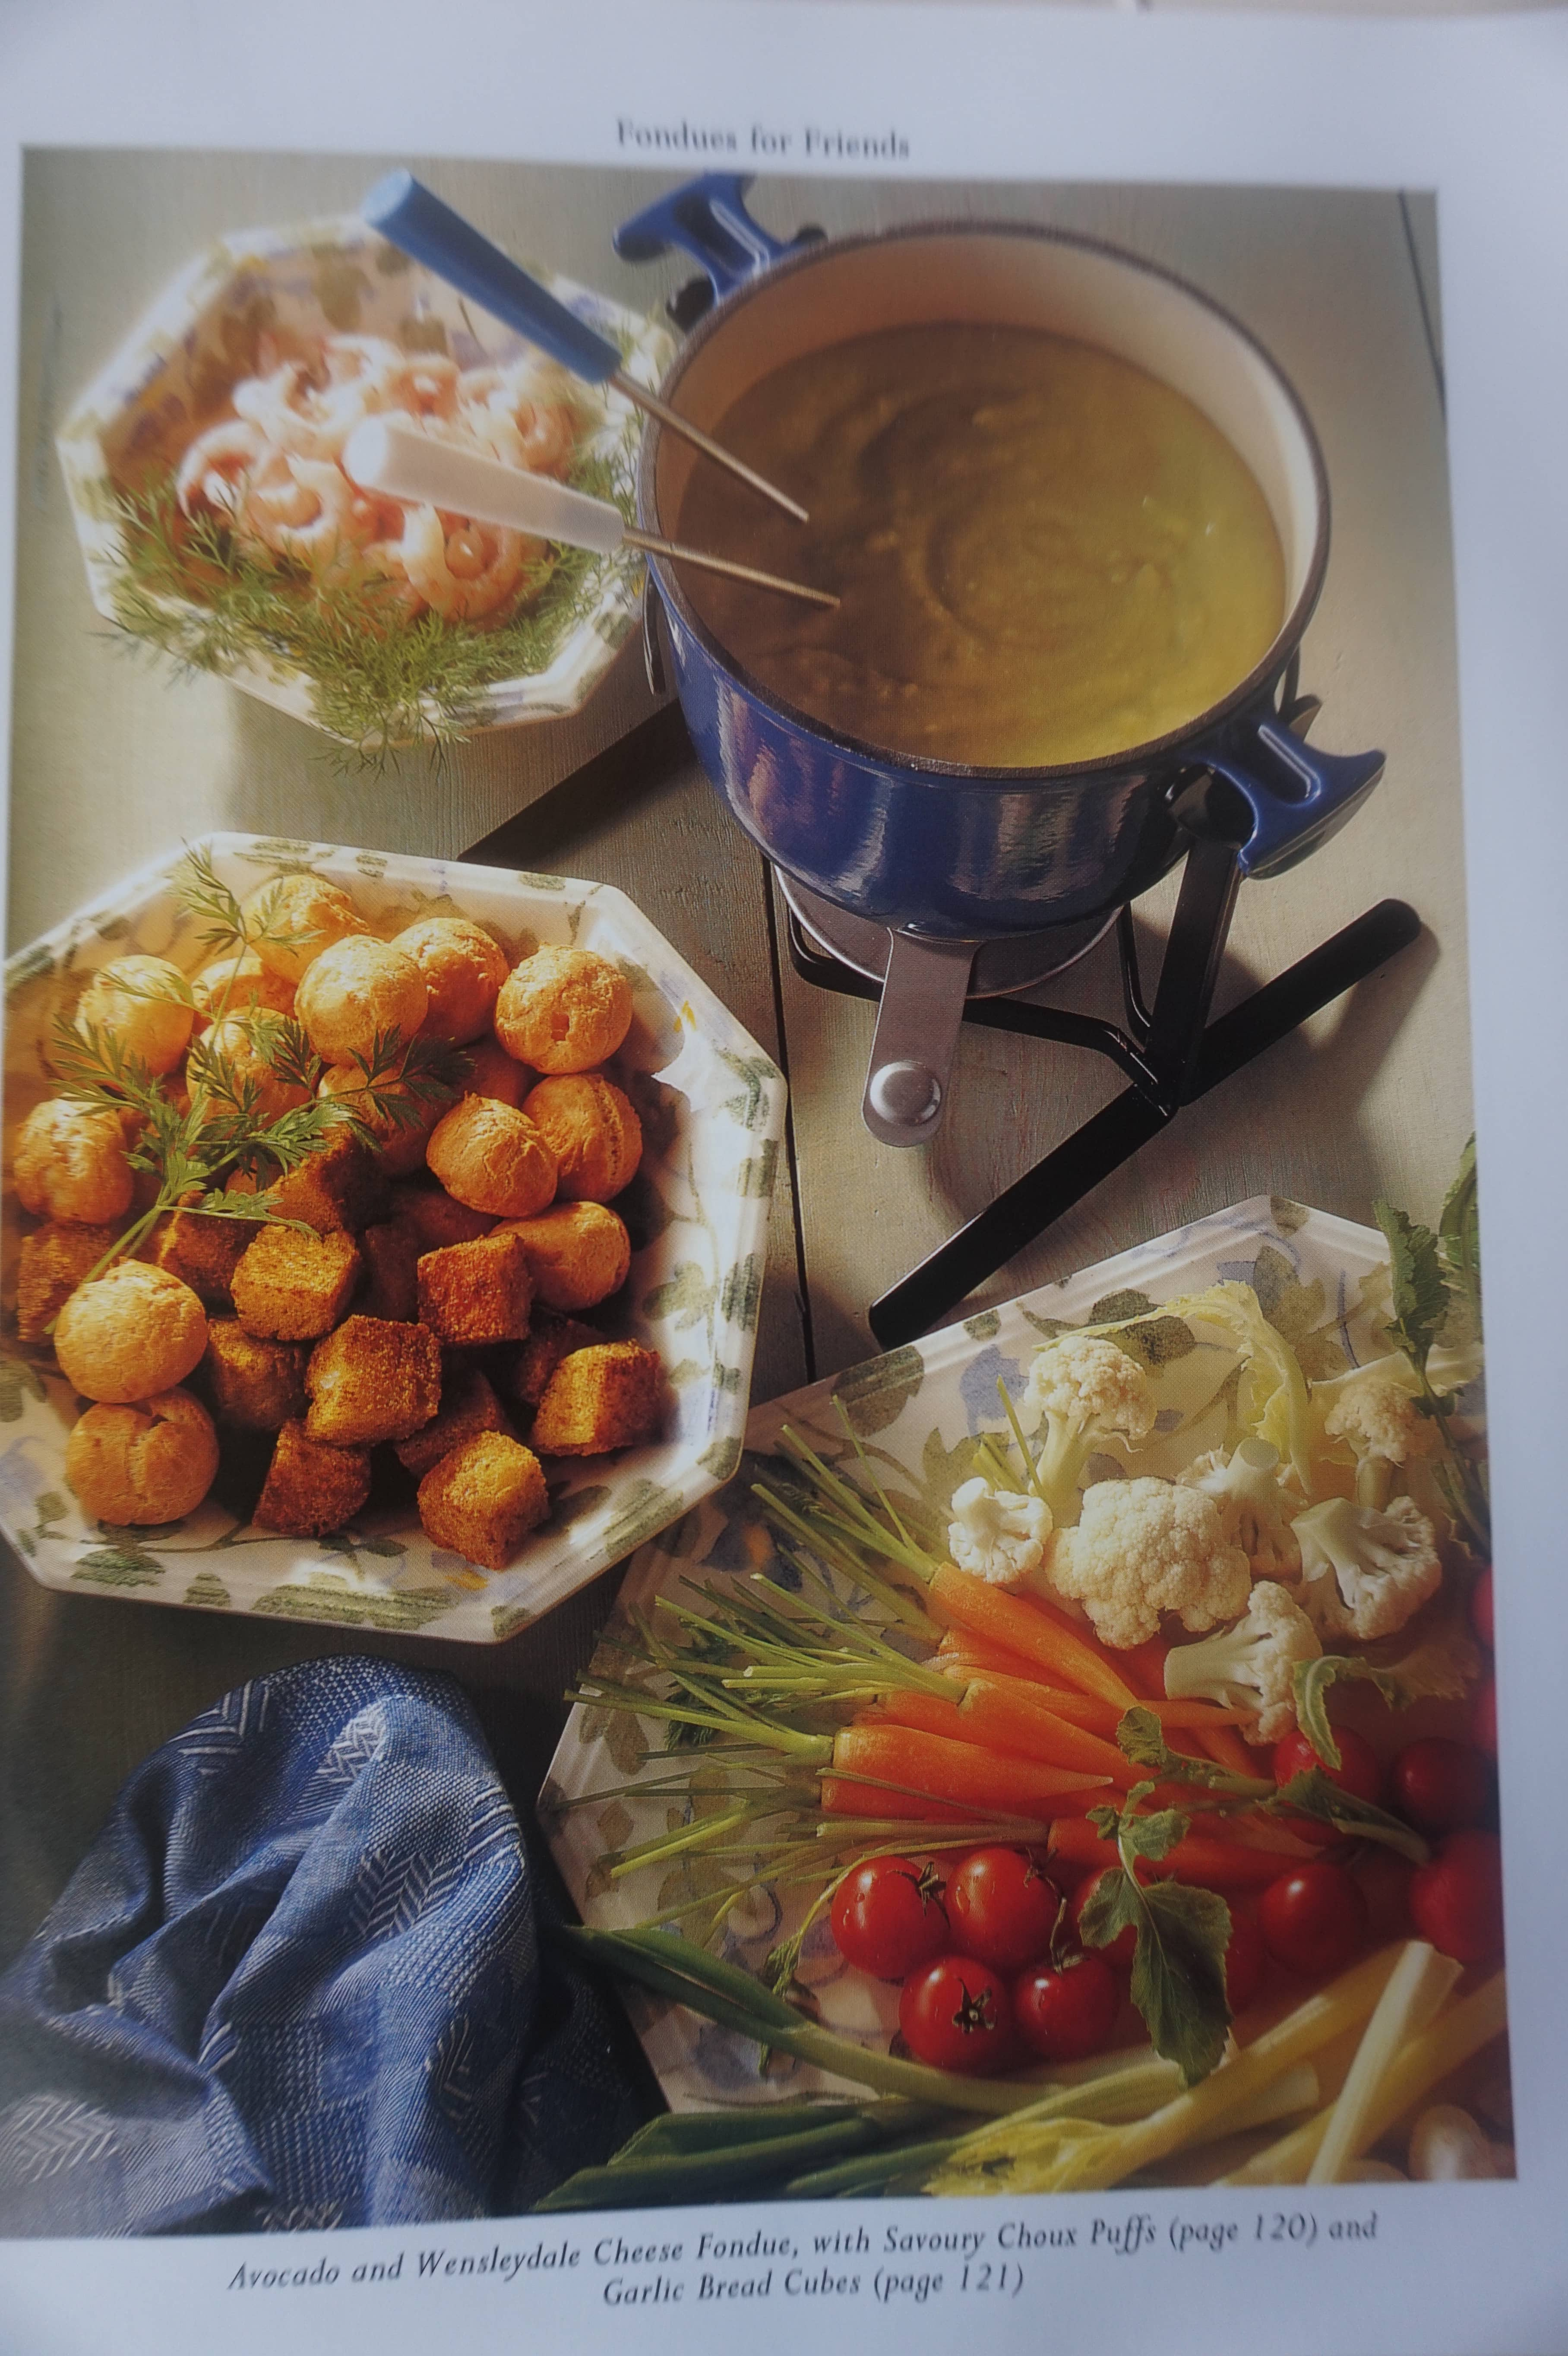 Avocado and Wensleydale Fondue